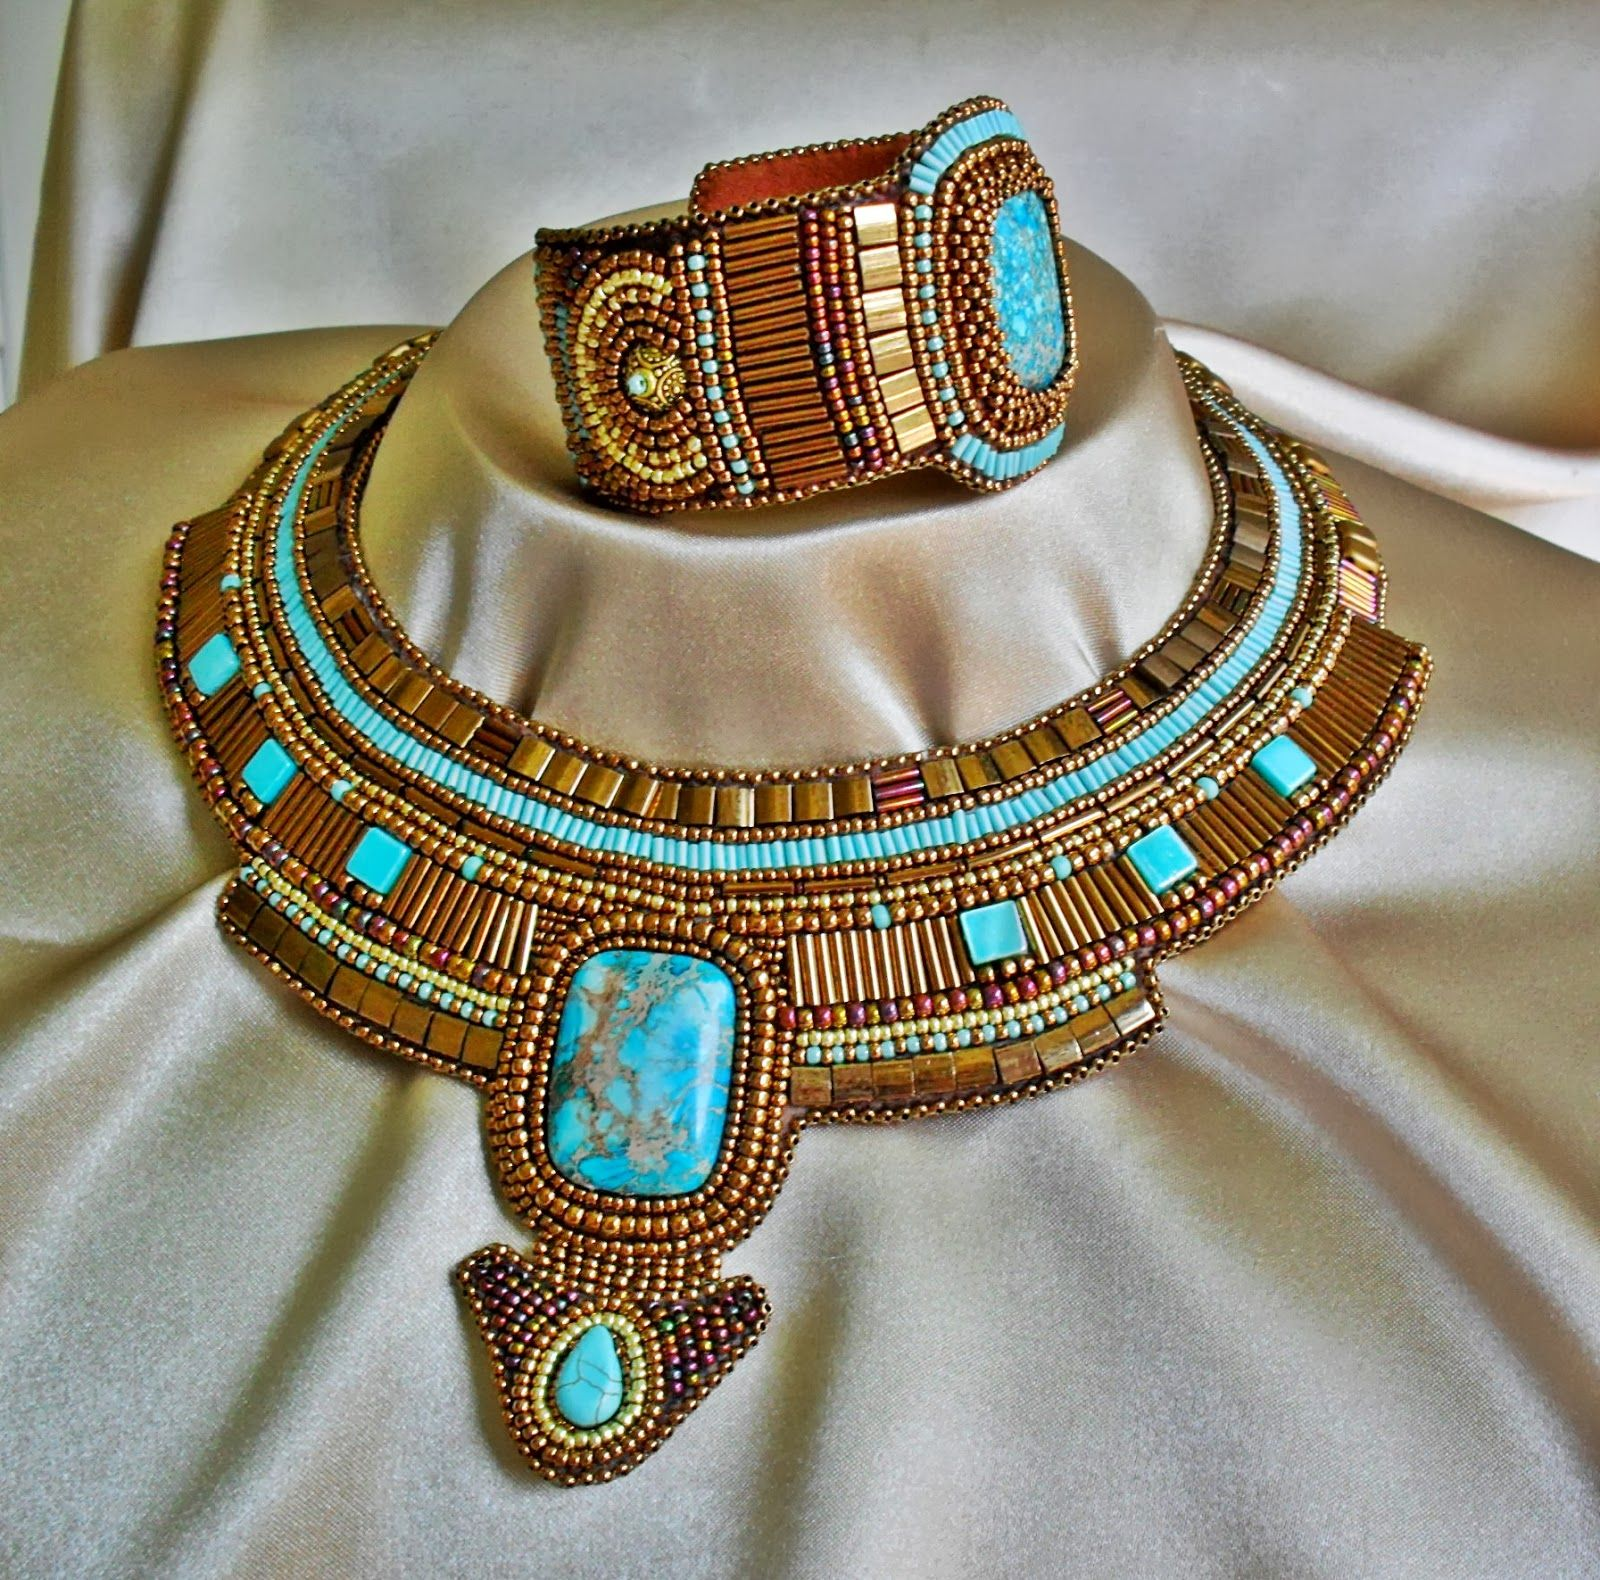 Böbe Ikotics, Nefertiti Necklace and Bracelet